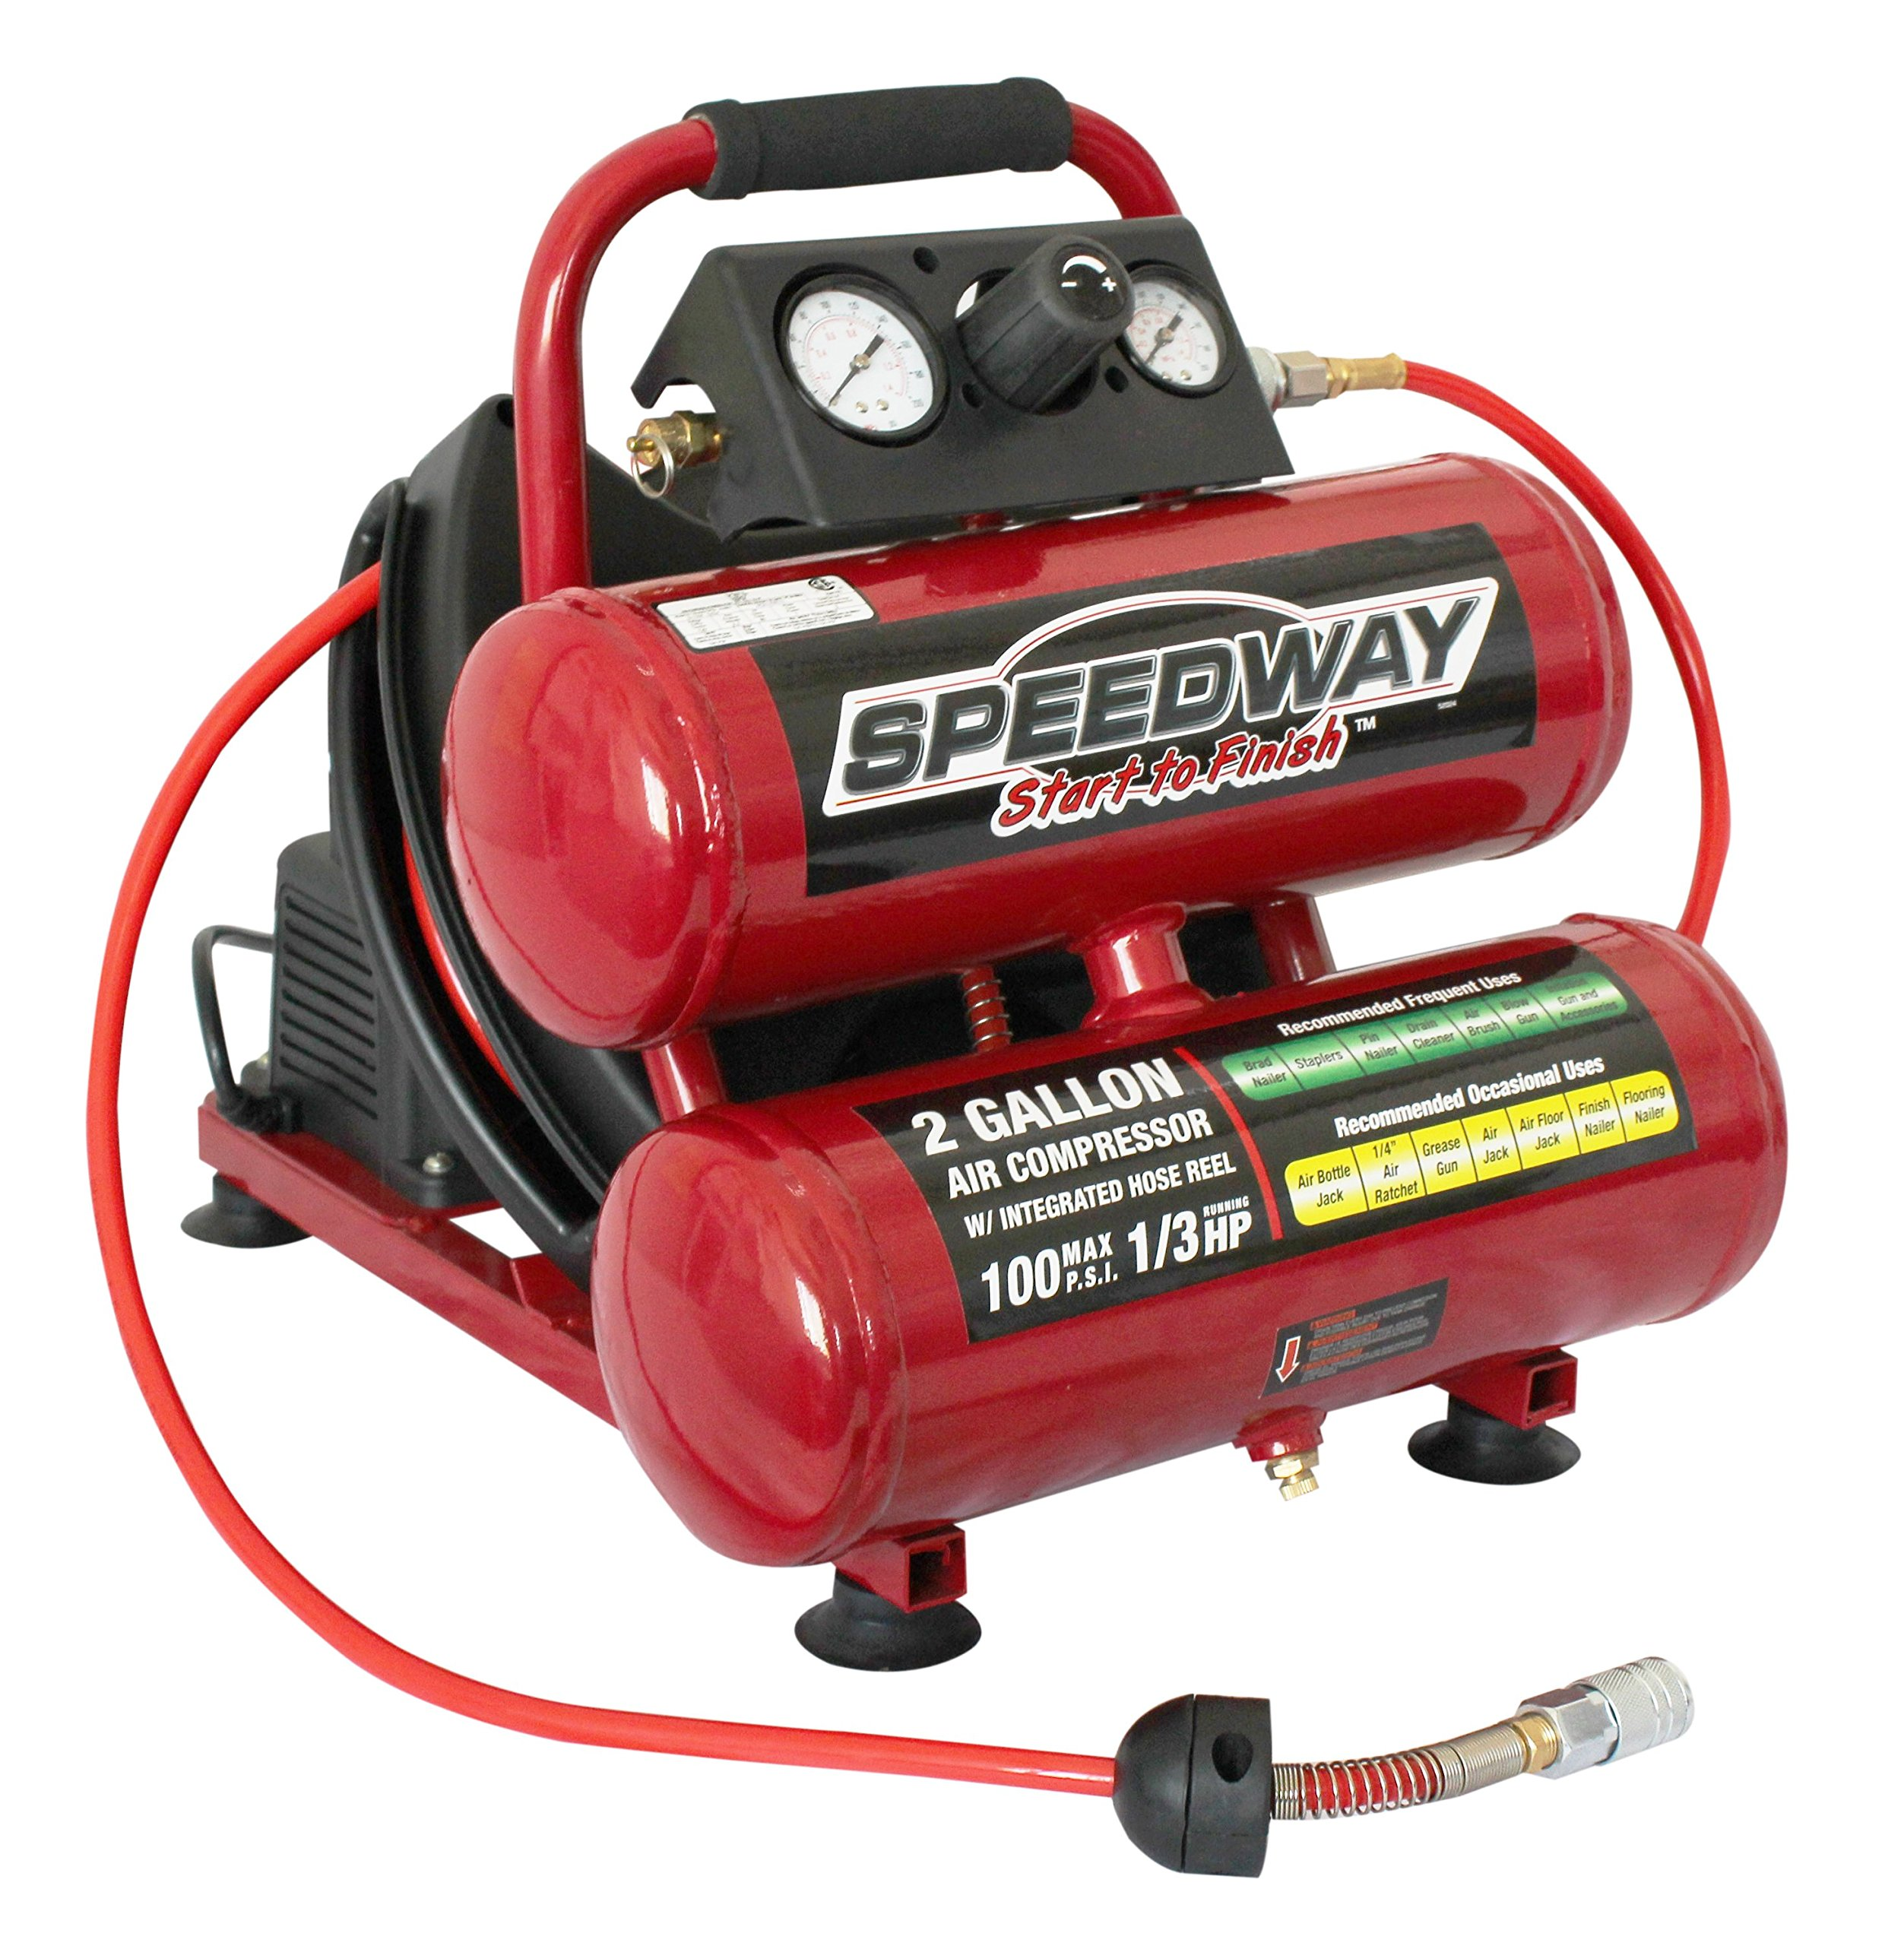 SPEEDWAY START TO FINISH: TWIN TANK 2 GALLON AIR COMPRESSOR WITH BUILT IN HOSE REEL by North American Tools